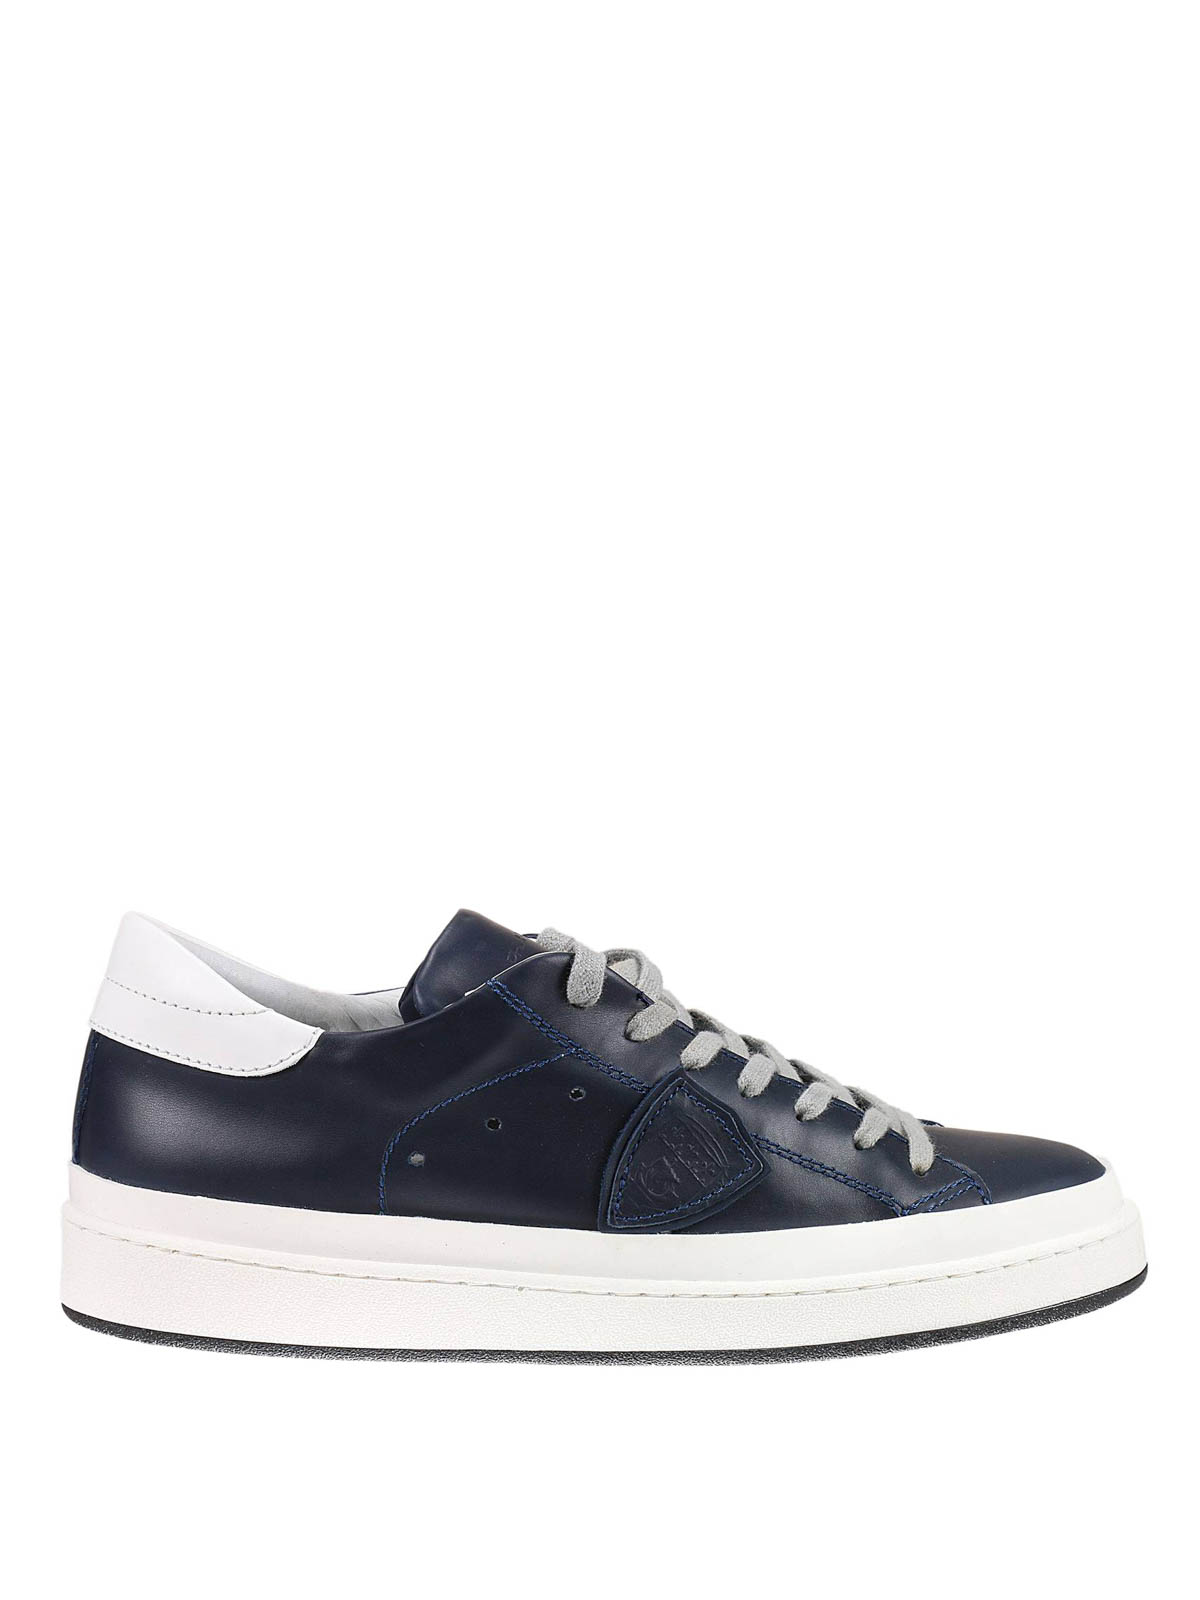 leather classic lakers sneakers by philippe model trainers ikrix. Black Bedroom Furniture Sets. Home Design Ideas